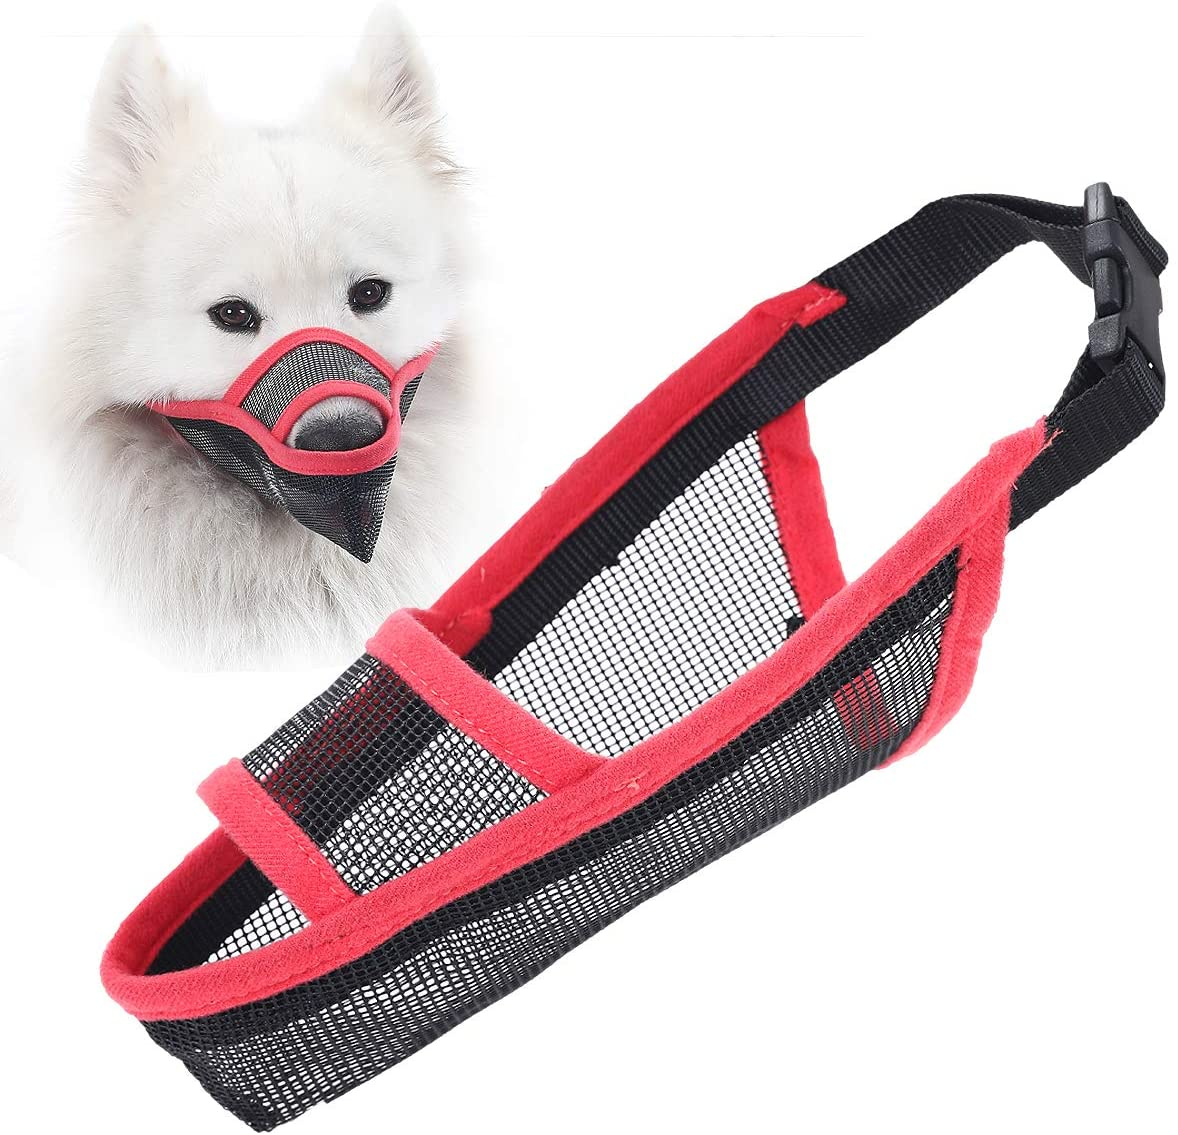 LUCKYPAW Nylon Dog Muzzle for Small Medium Large Dogs, Air Mesh Breathable and Drinkable Pet Muzzle for Anti-Biting Anti-Barking Licking